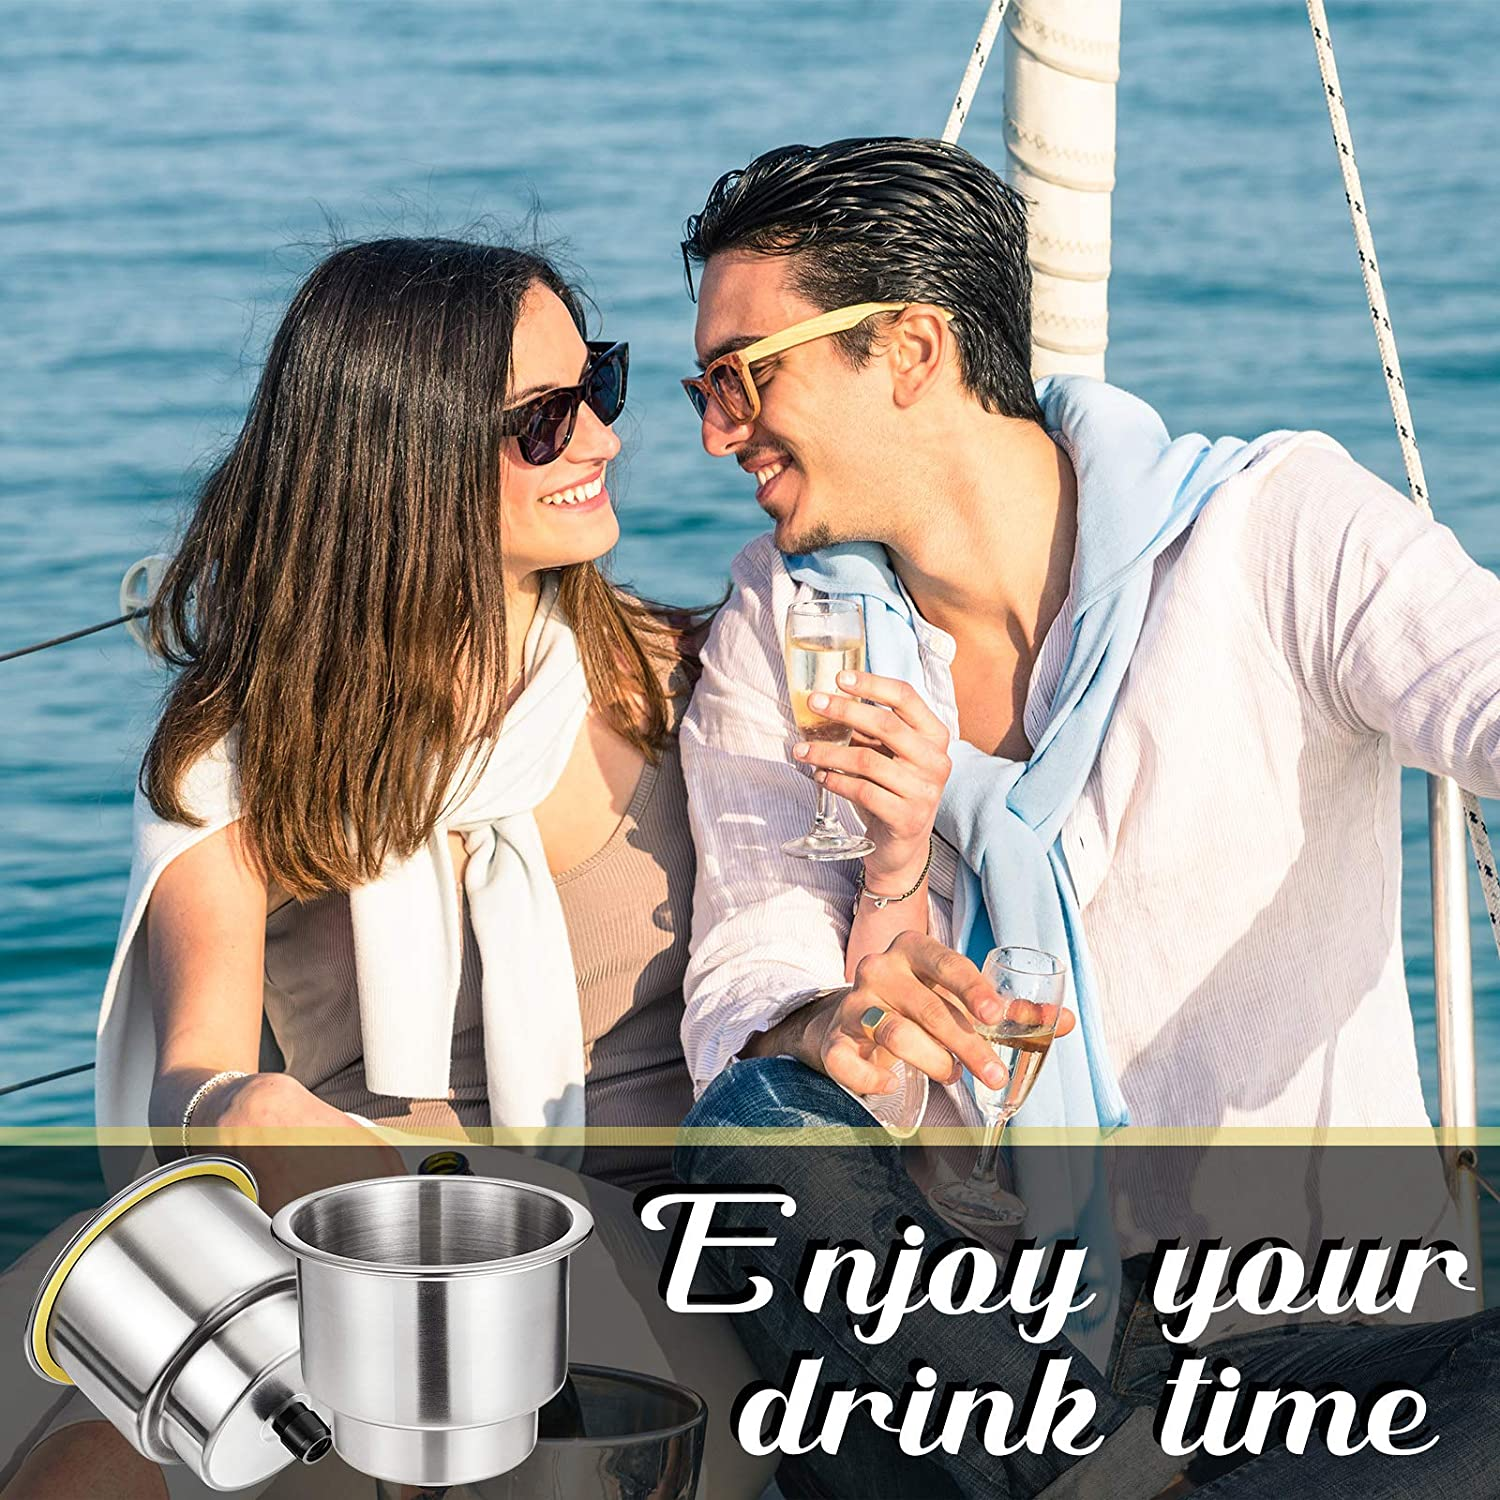 Silver 2 Pieces Stainless Steel Cup Drink Holder Boat Cup Drink Holder with Drain for Marine Boat RV Car Trailer